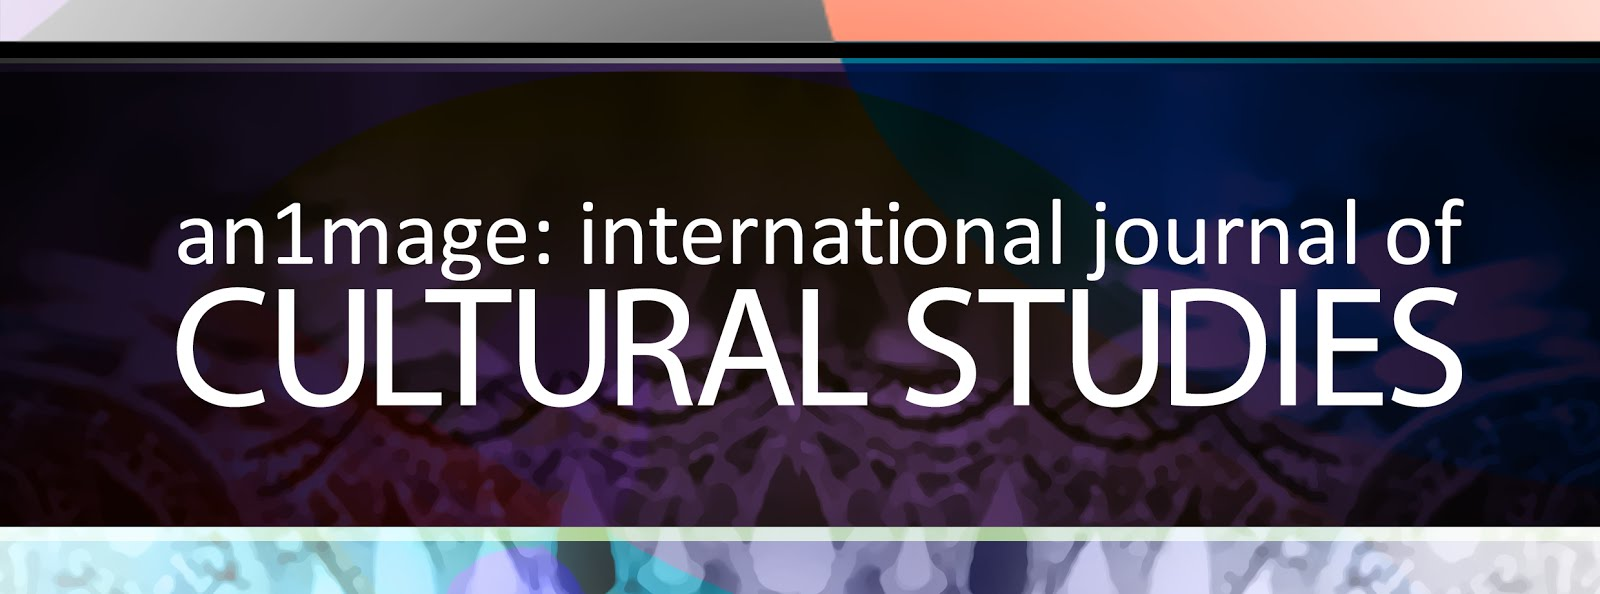 AIJCS: an1mage international journal of cultural studies